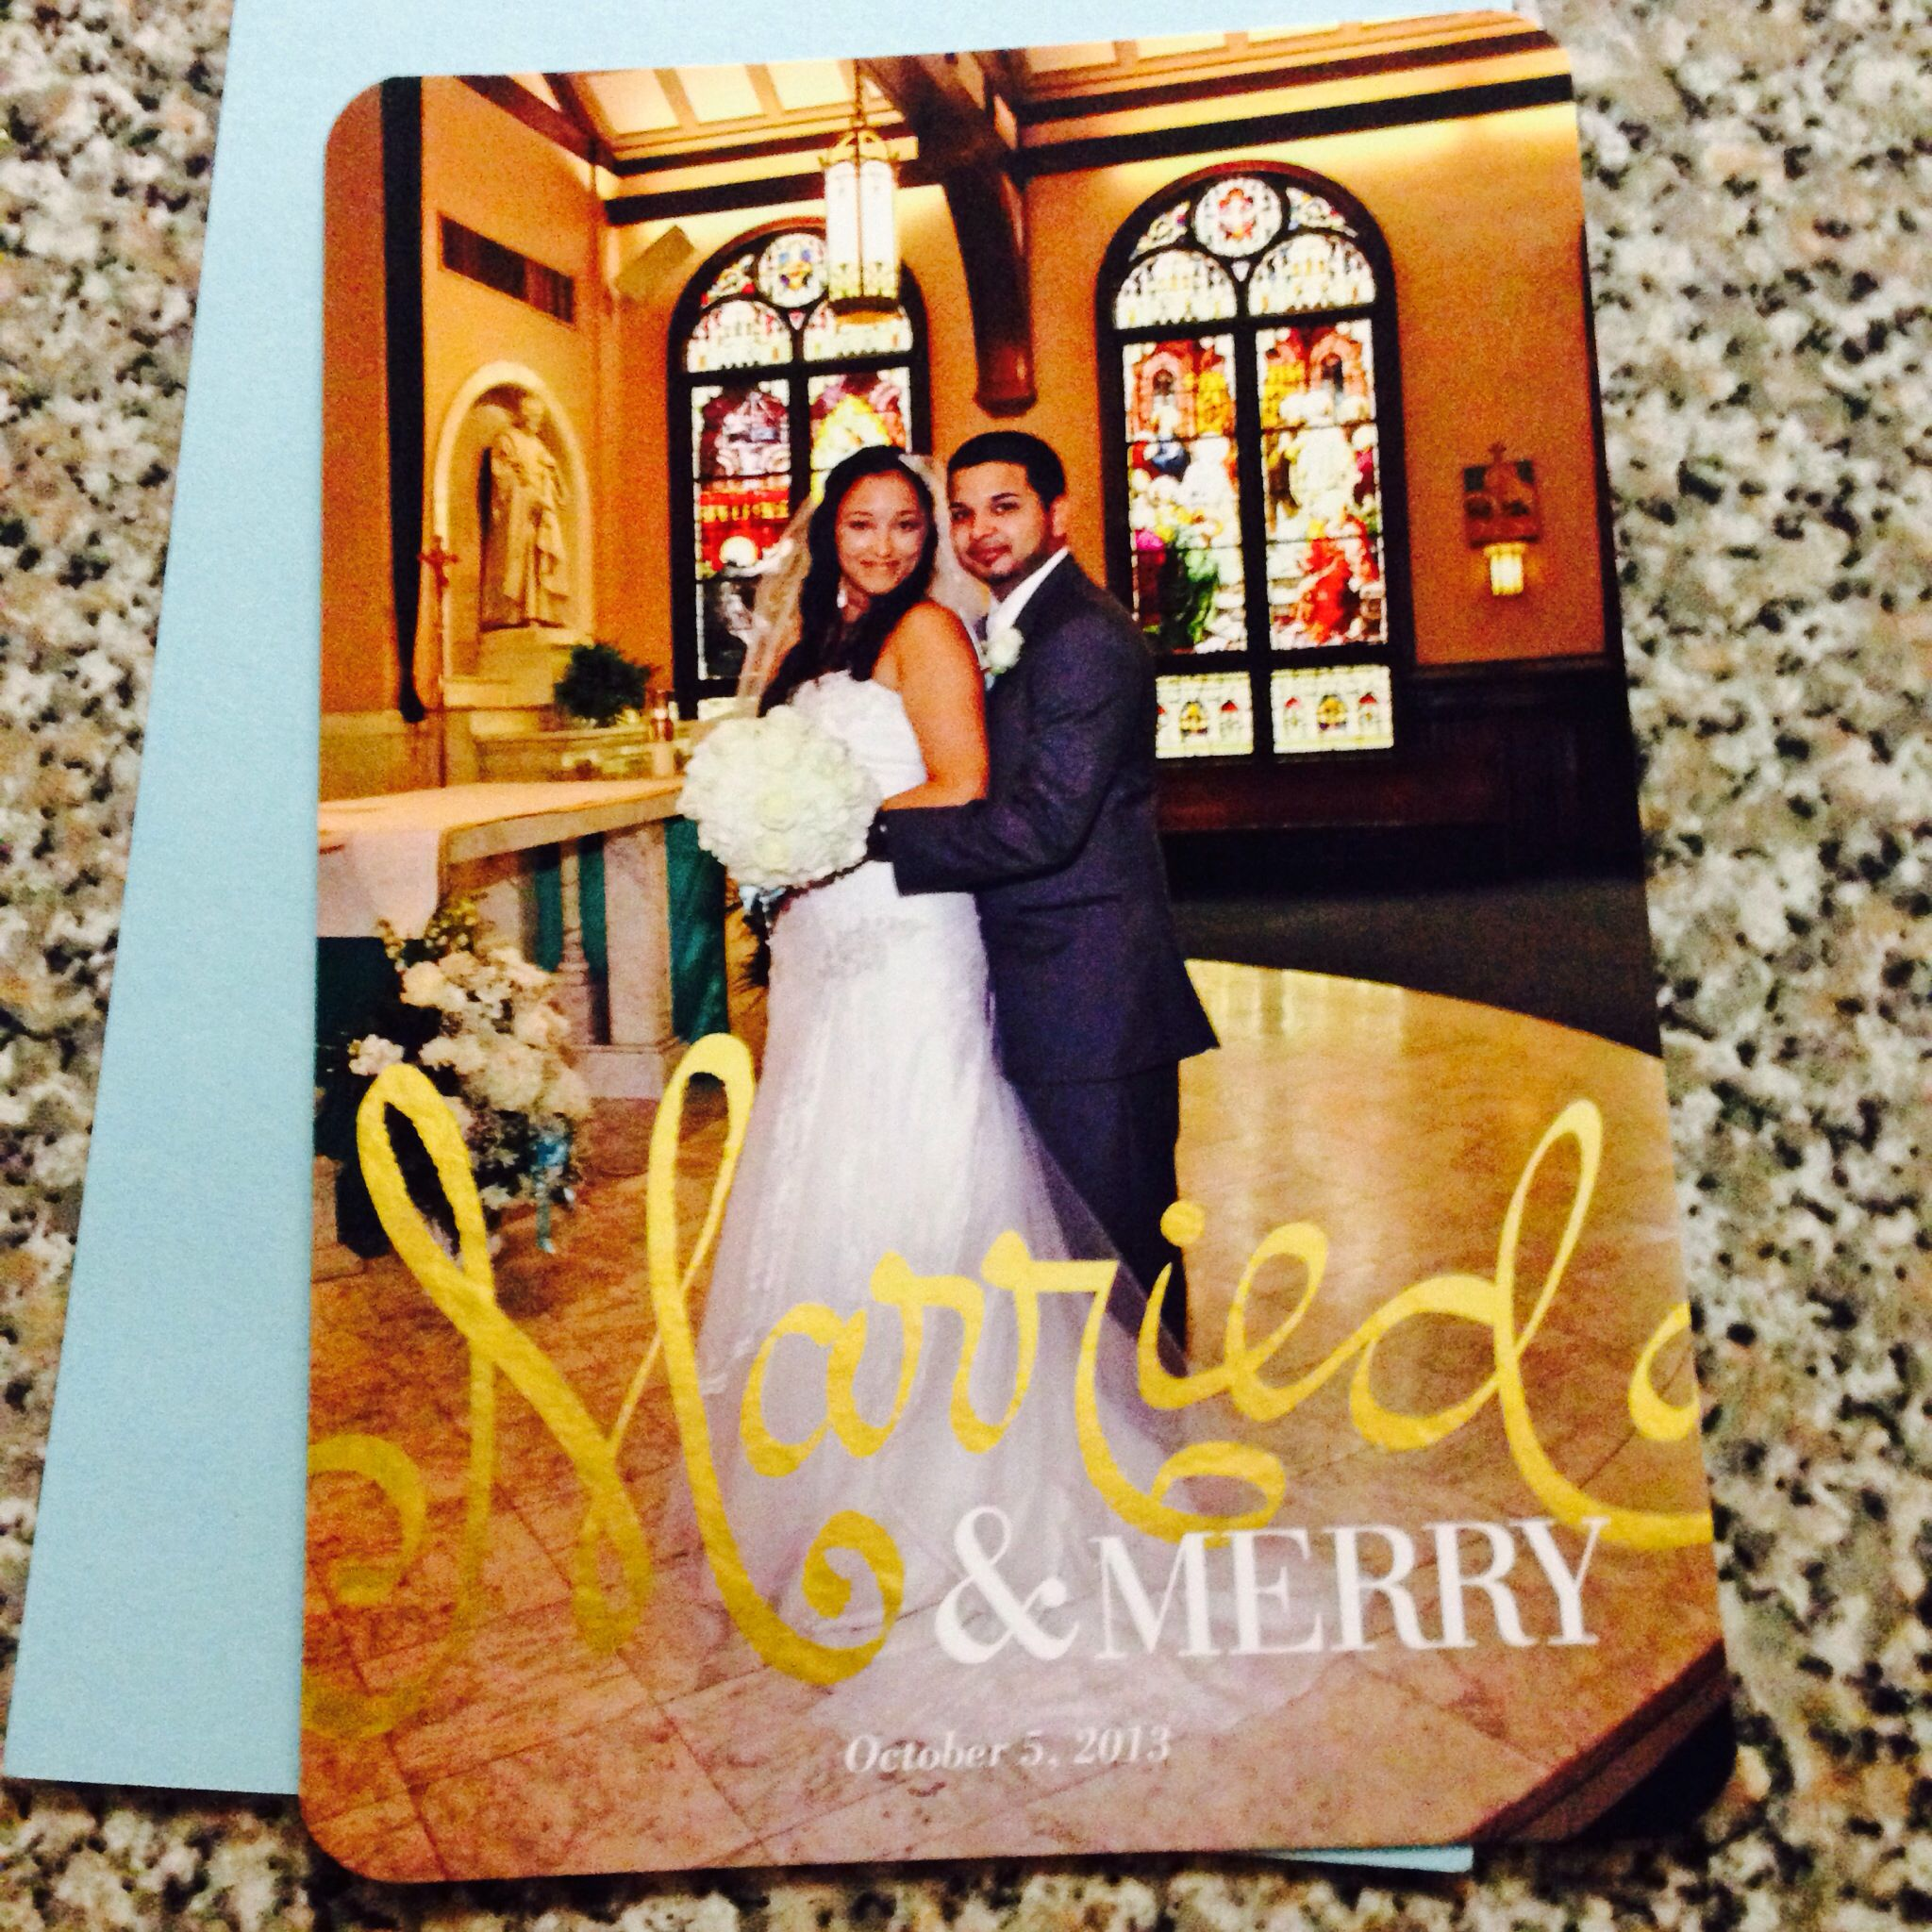 Christmas card from shutterfly   My vintage style wedding ...